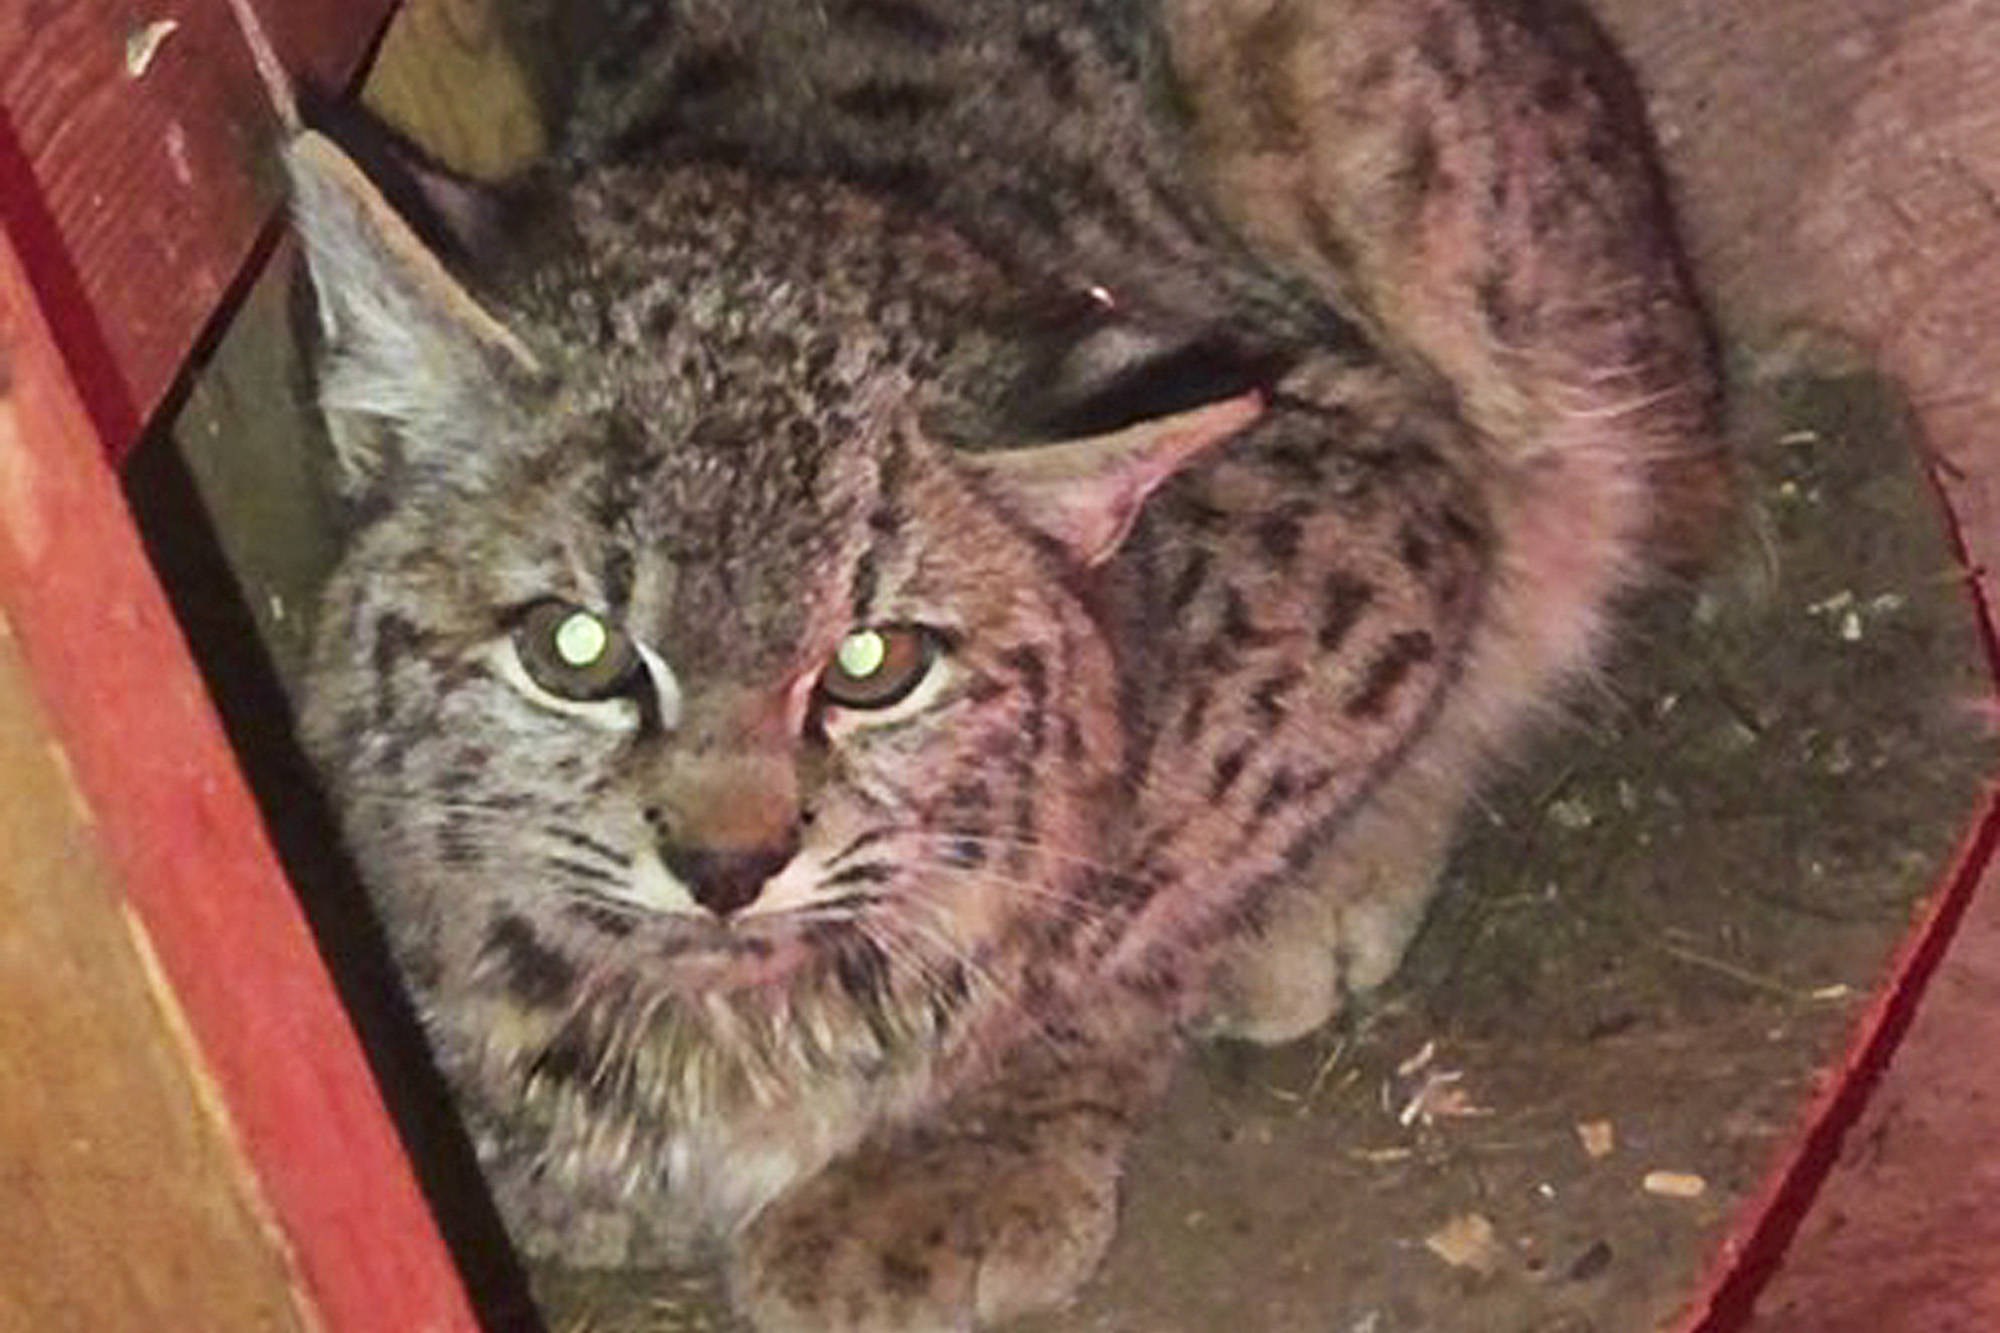 A young bobcat took up residence in a Salmon Arm couple's bird coop and had to be scared out. (Jim Hilland photo)